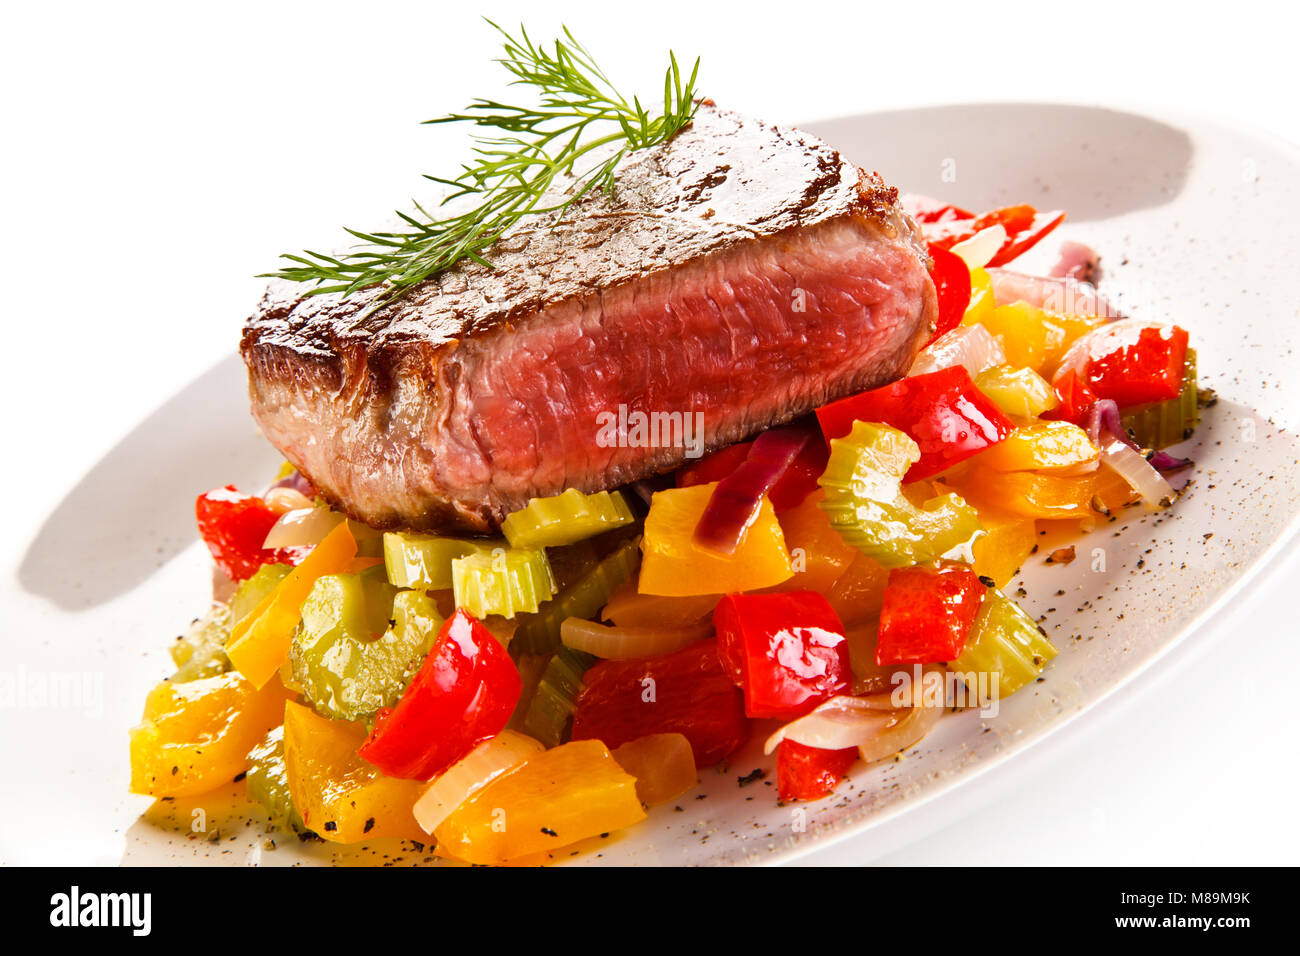 Grilled steak and vegetable salad Stock Photo